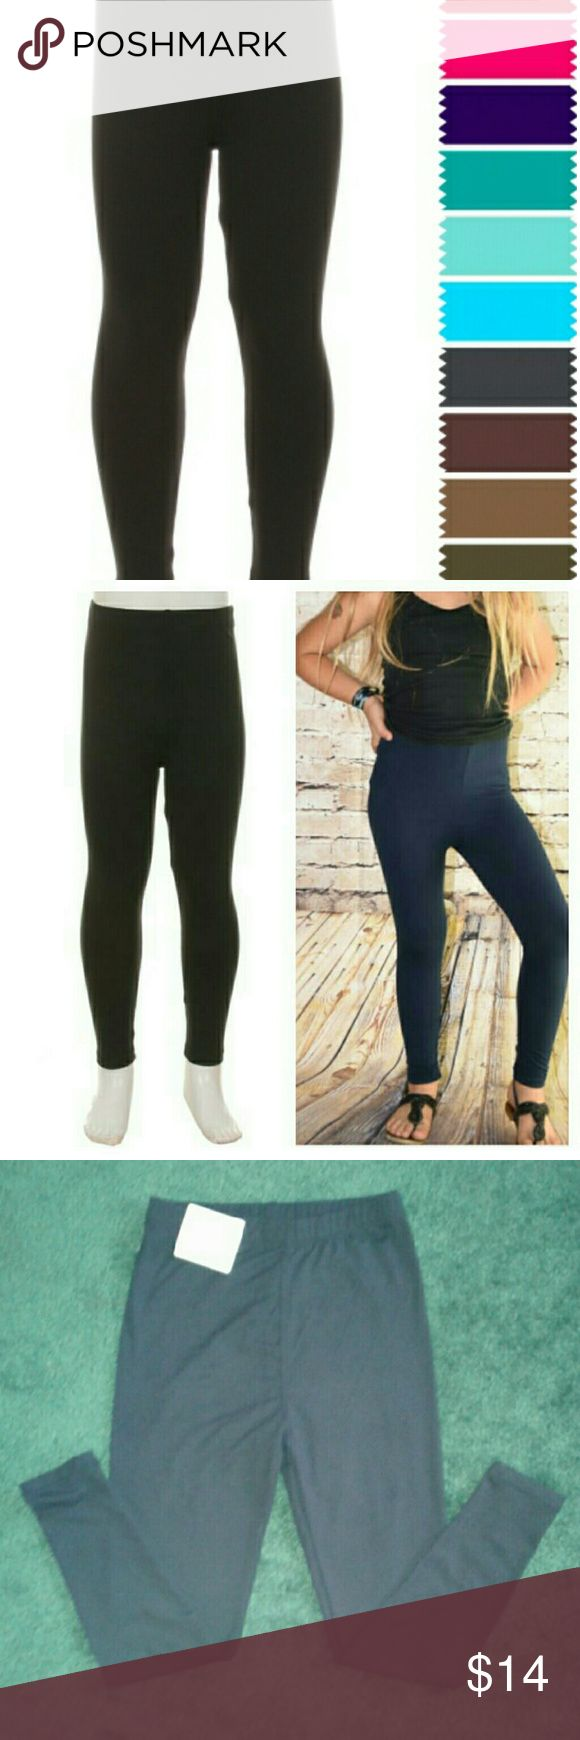 """Buskins girls black leggings Bikinis are buttery soft  with 95% polyester 5% spandex they have an ultra soft peachskin feel. For girls one size fits most from age 8 TO SIZE 1- 2... MEASUREMENTS: INSEAM 19 1/2"""" waist 9 1/2,  Open to offers. Buskins  Bottoms Leggings"""